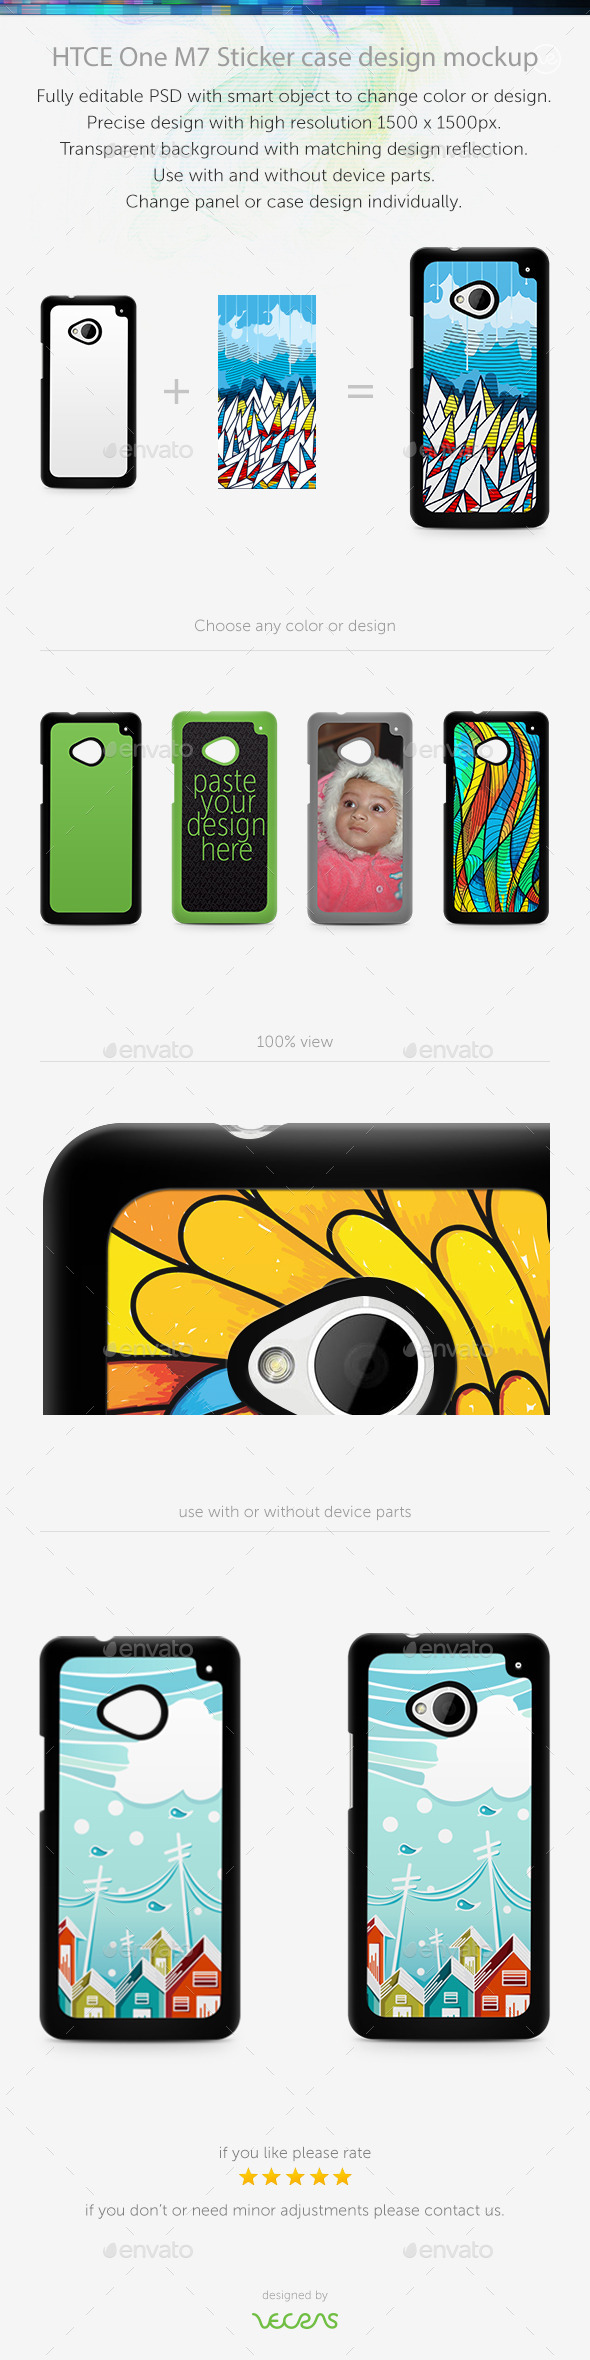 GraphicRiver HTCE One M7 Sticker Case Design Mockup 10401146